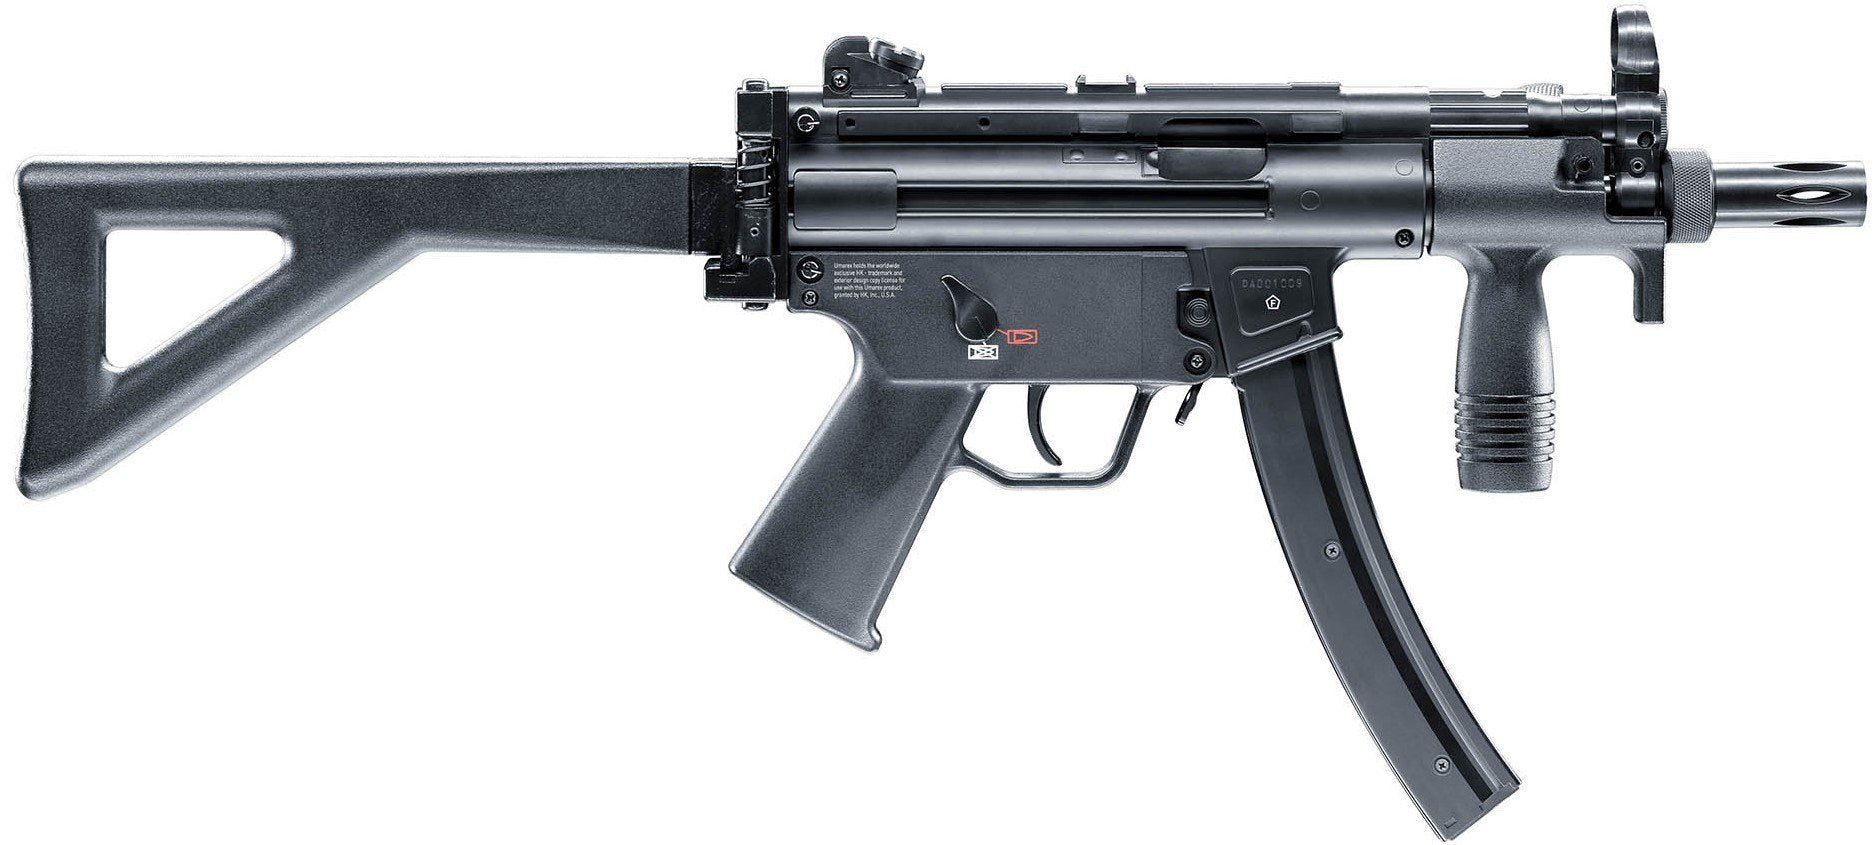 Metralleta CO2 Heckler & Koch MP5K-PDW - Sportsguns